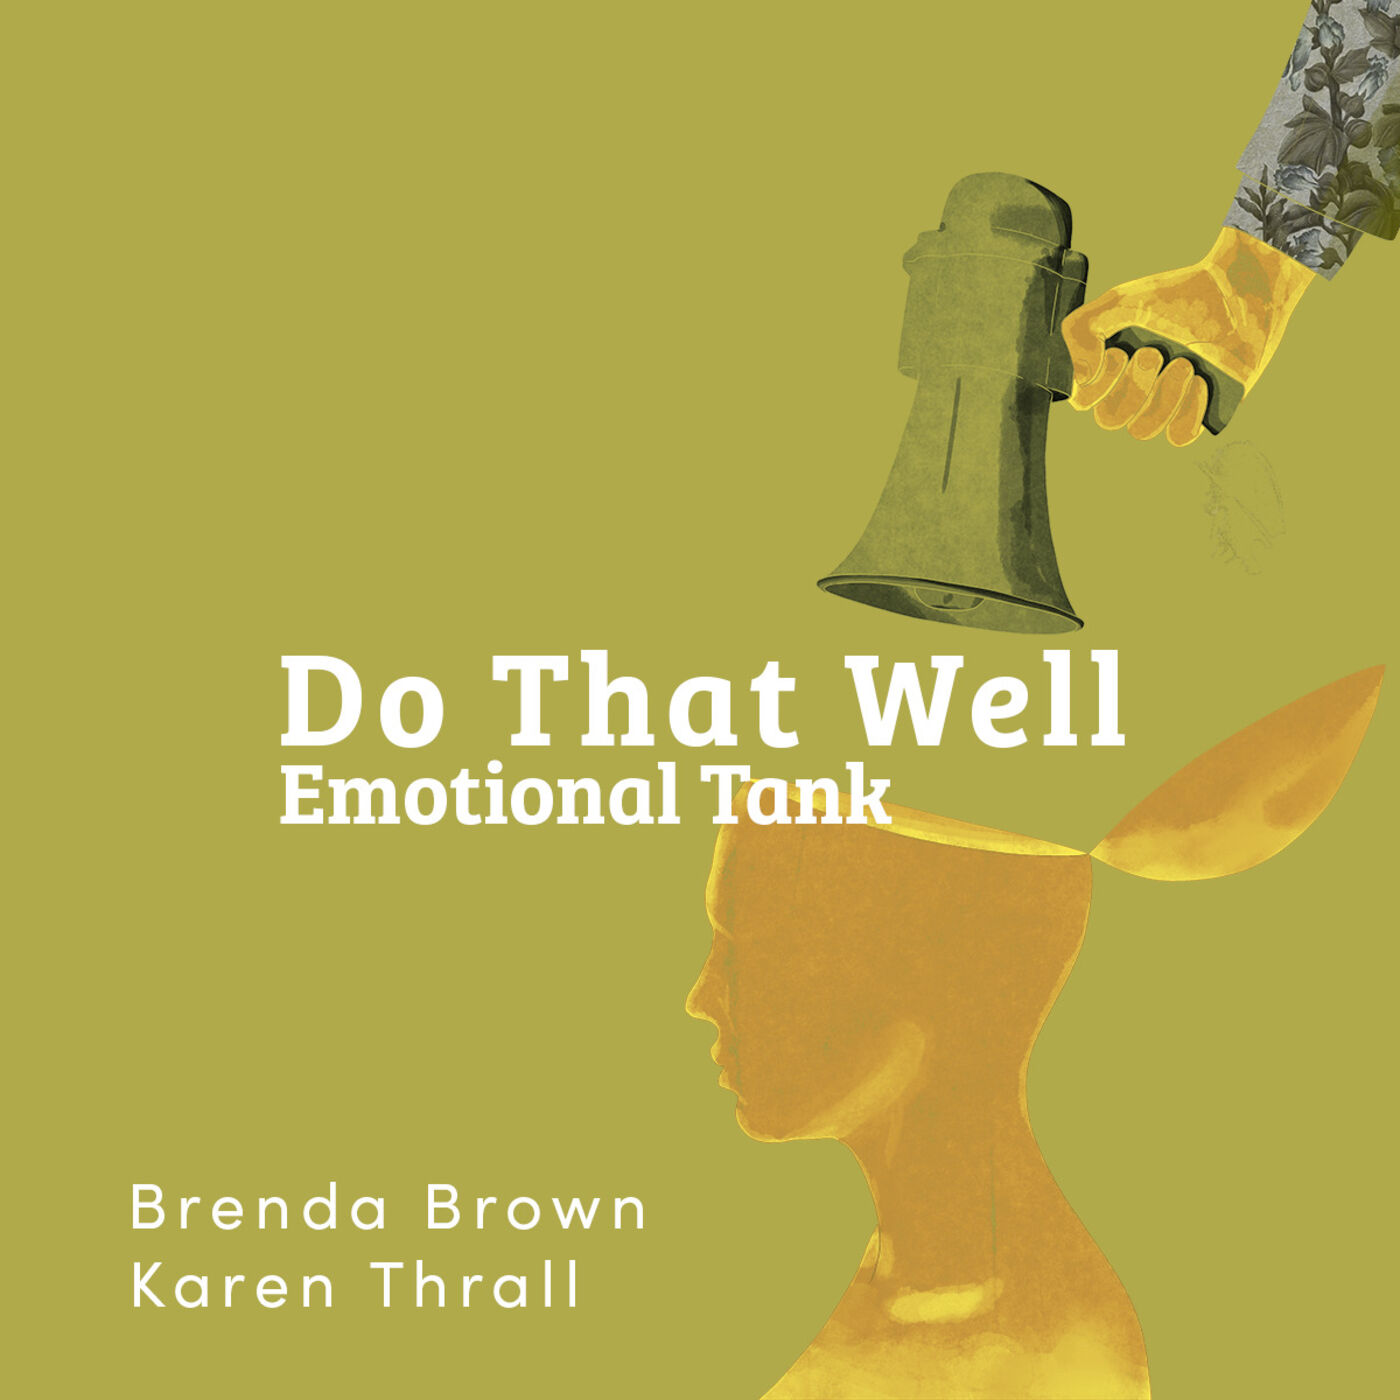 Do That Well: Emotional Tank